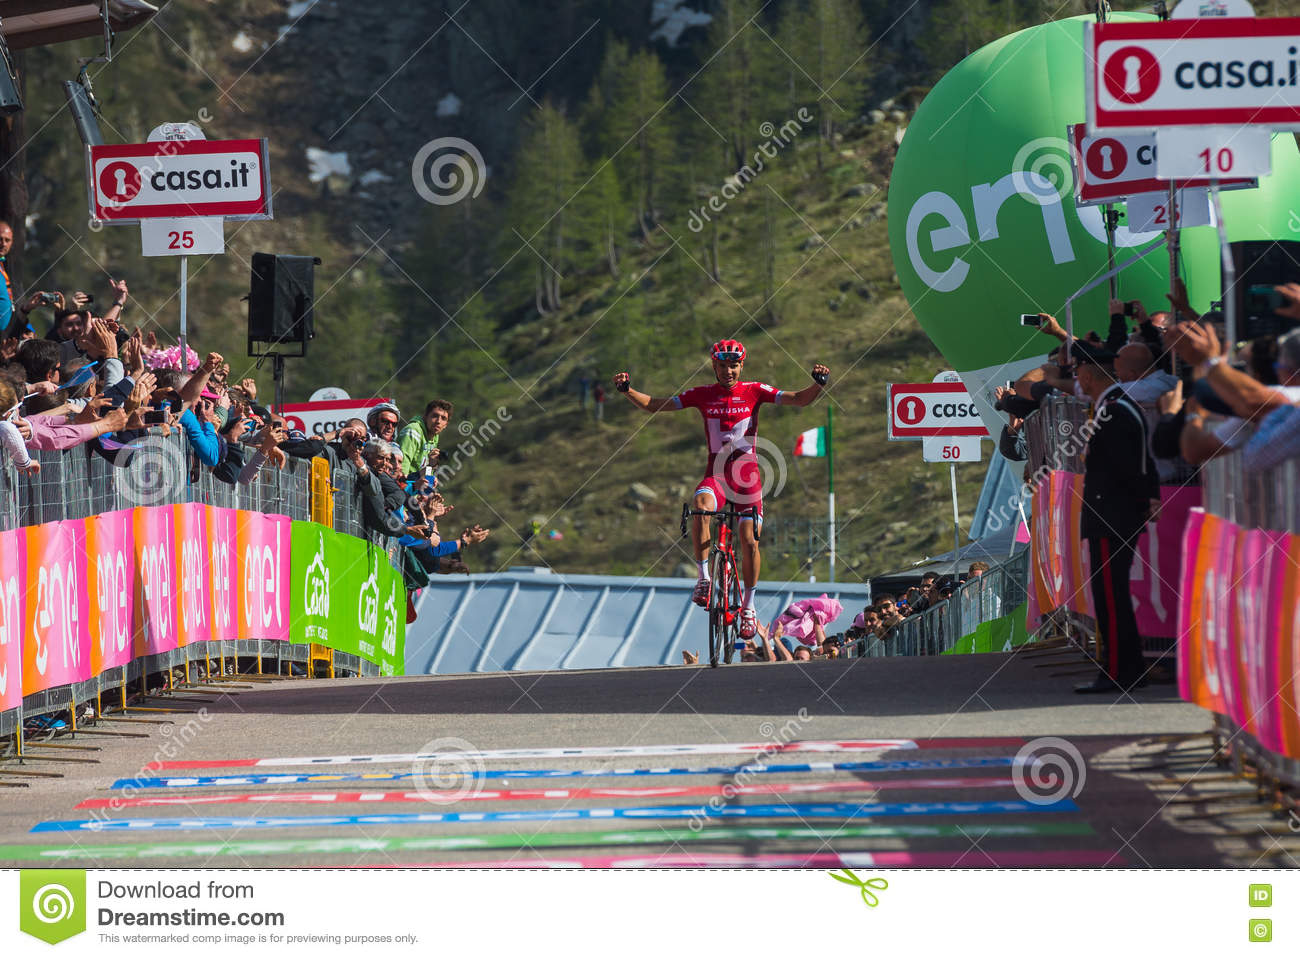 Sant Anna, Italy May 28, 2016; Rein Taaramae, Katusha team, exhausted passes the finish line and Win a hard mountain stage